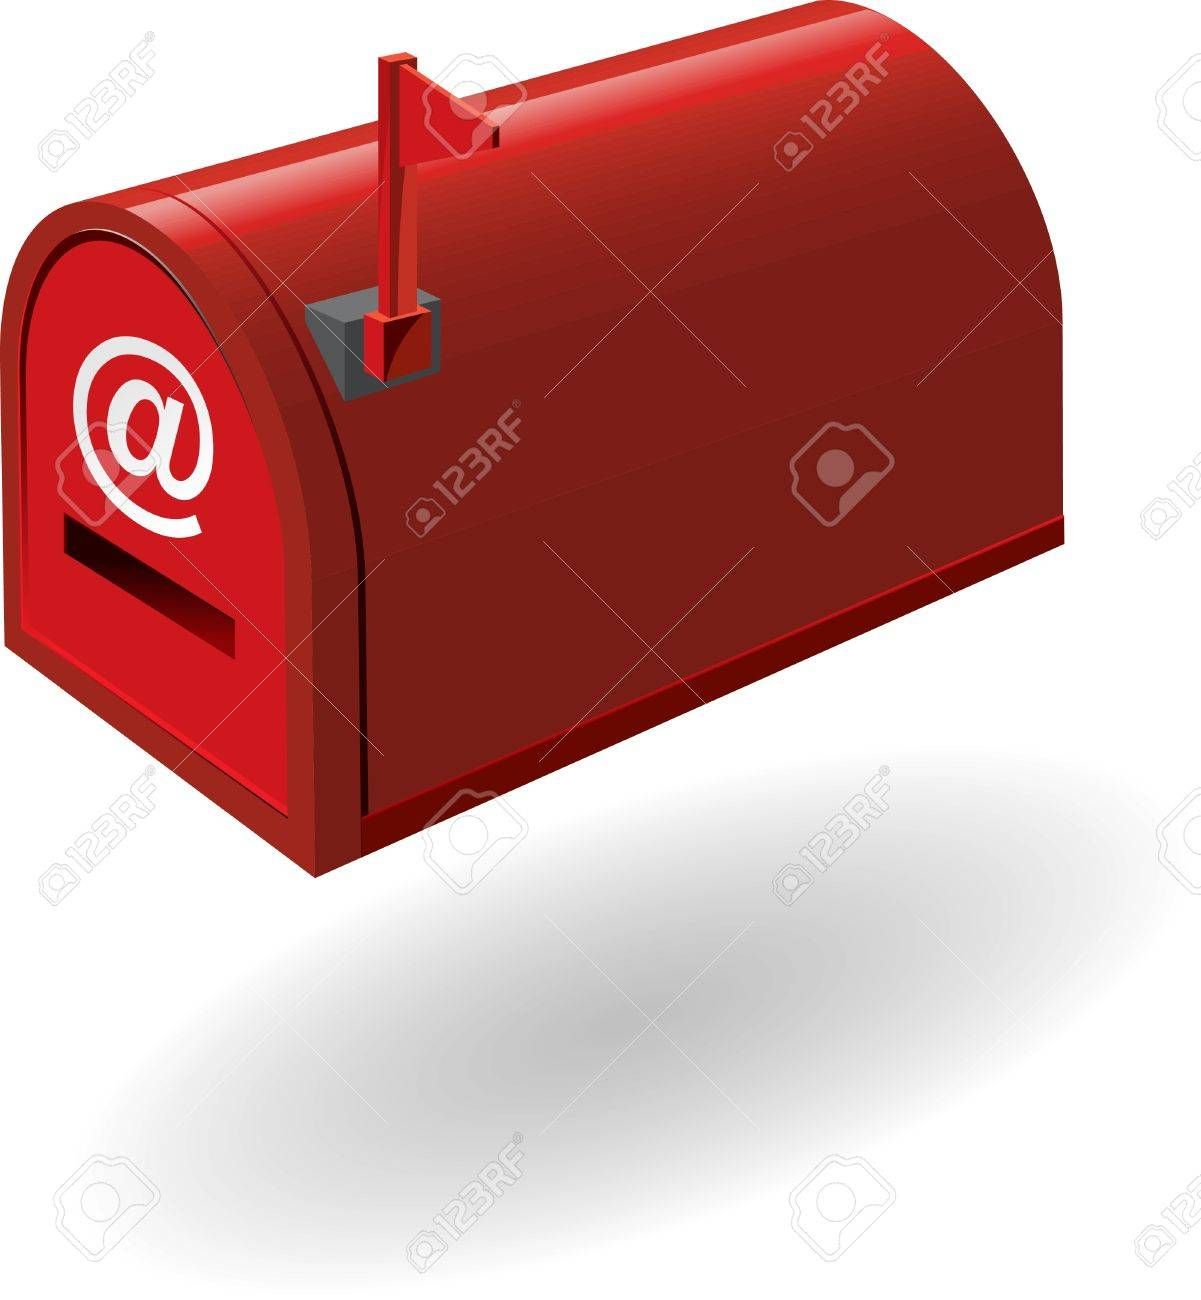 red mailbox with the flag raised   illustration Stock Photo - 17474208